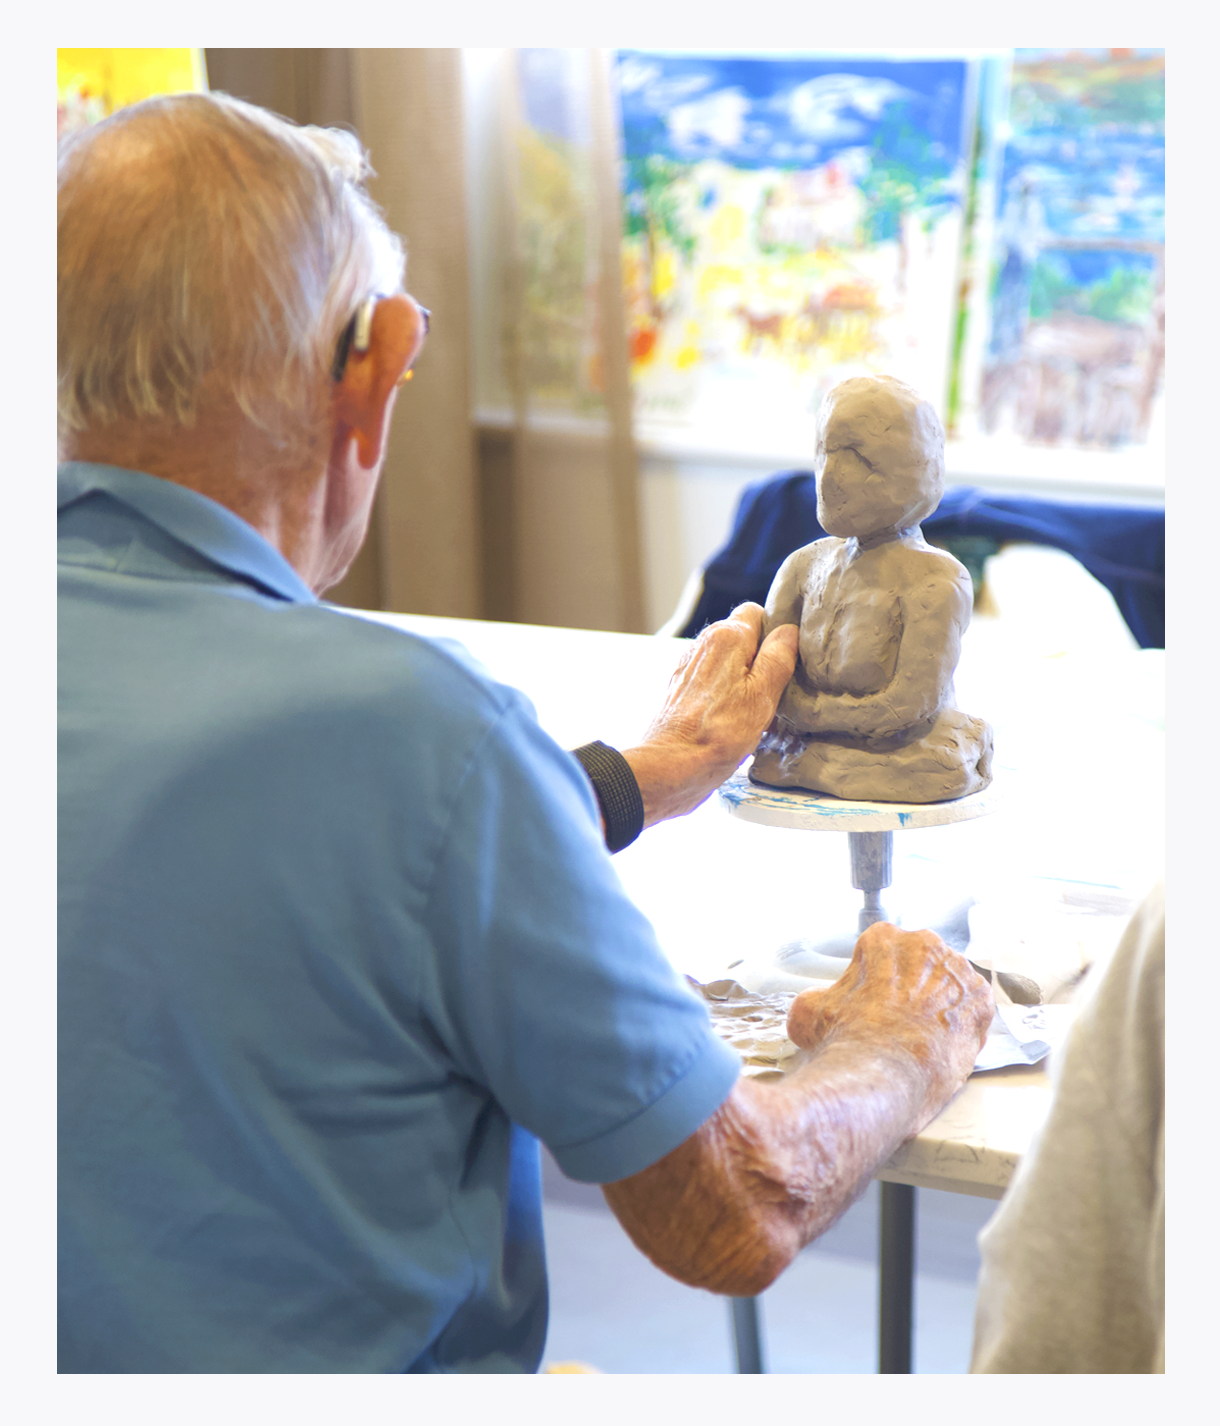 Older gentleman clay sculpting, Palliative Care Art and Music programs, comfort care, life enhancement